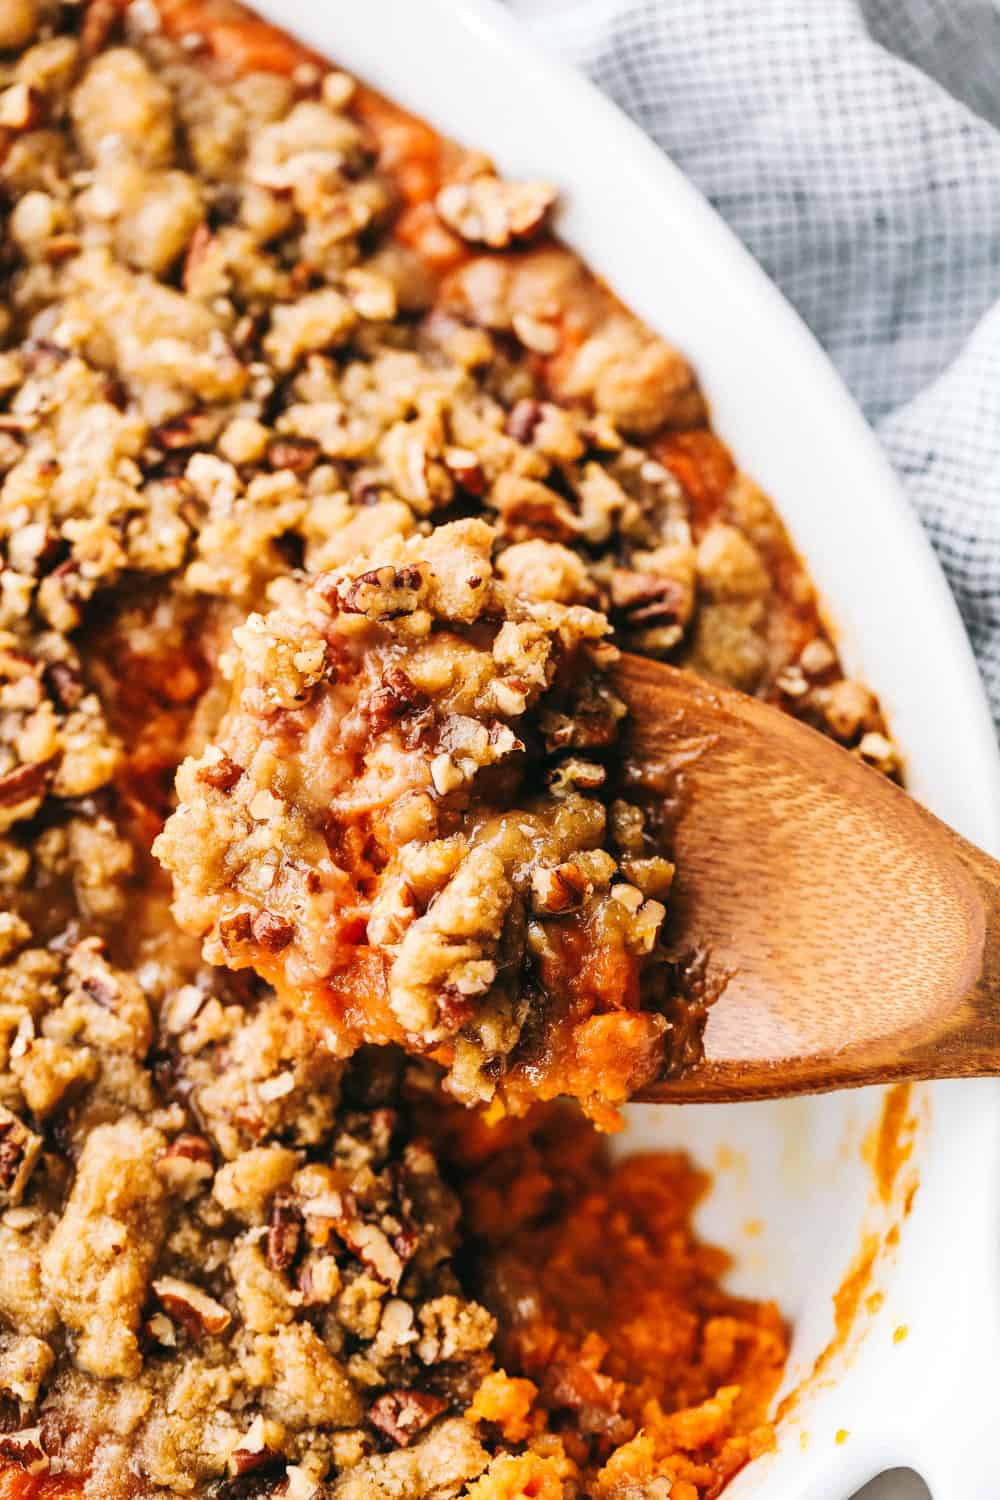 baked sweet potato casserole with a wooden spoon